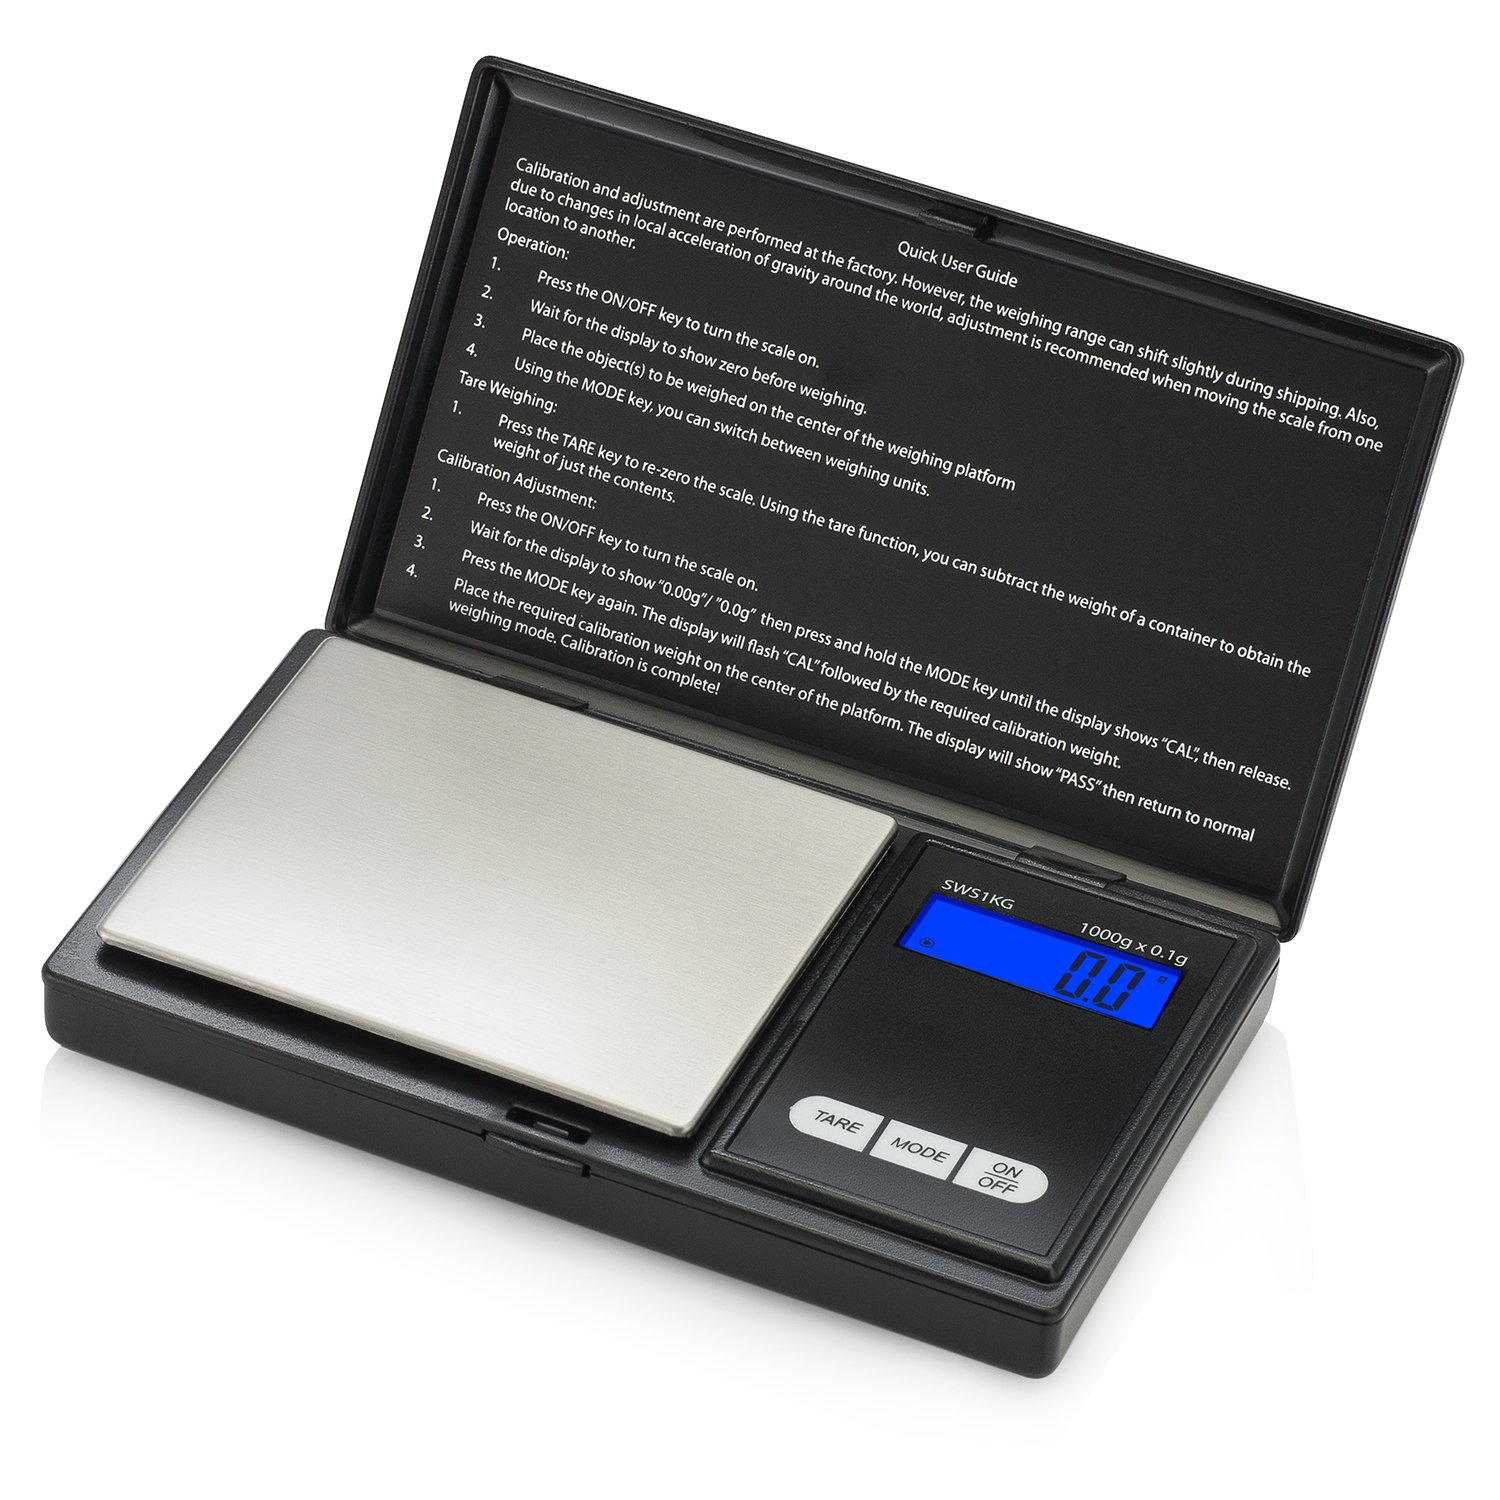 Smart Weigh SWS1KG Elite Series Digital Pocket Scale, 1000 by 0.1gm, Black by Smart Weigh (Image #1)